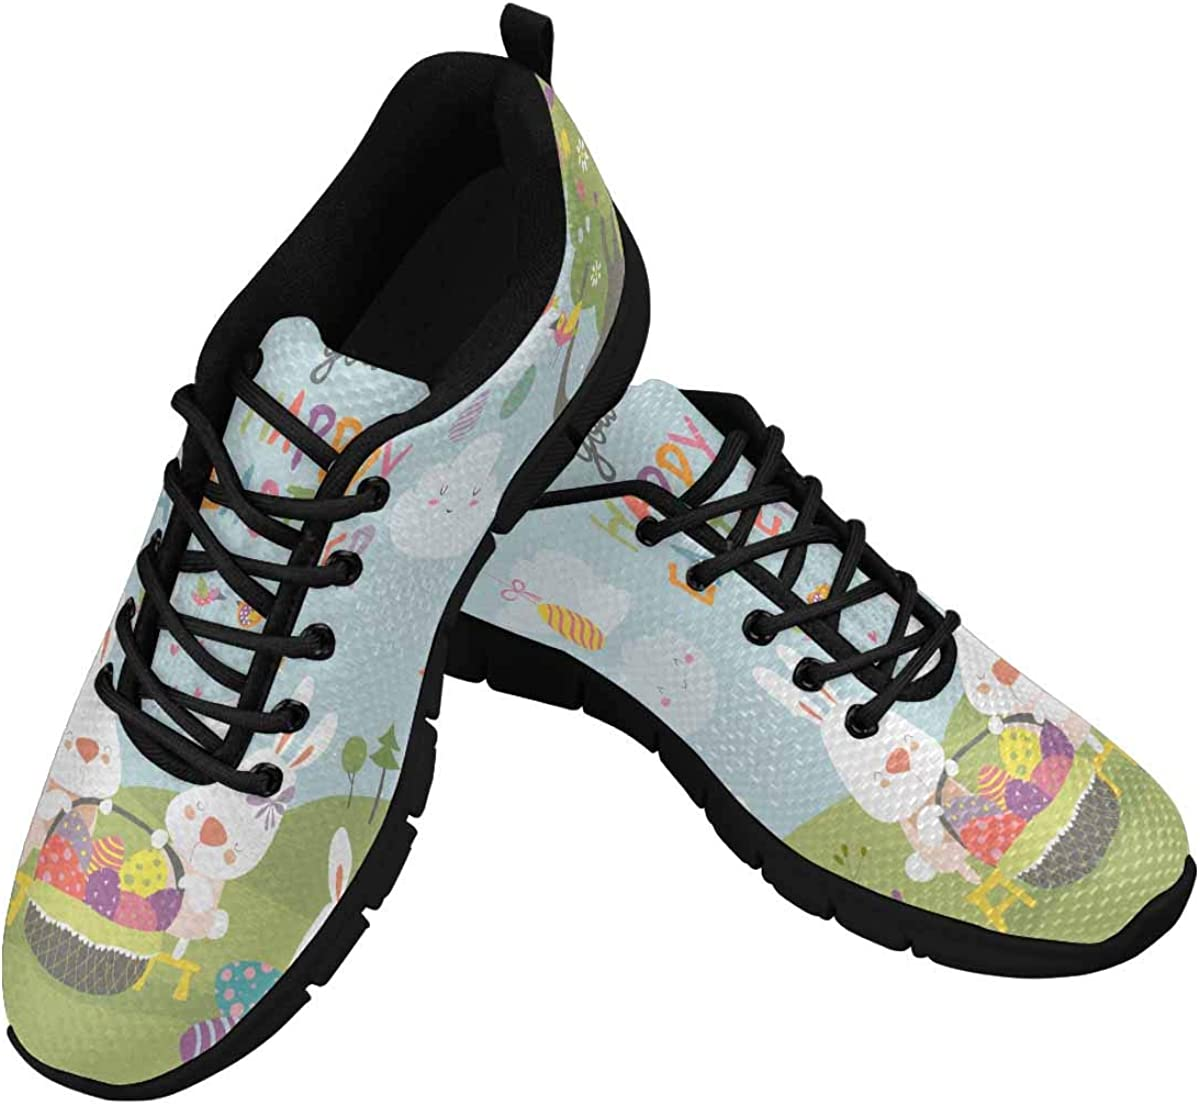 INTERESTPRINT Easter Bunnies and Easter Egg Women's Athletic Walking Shoes Casual Mesh Comfortable Work Sneakers